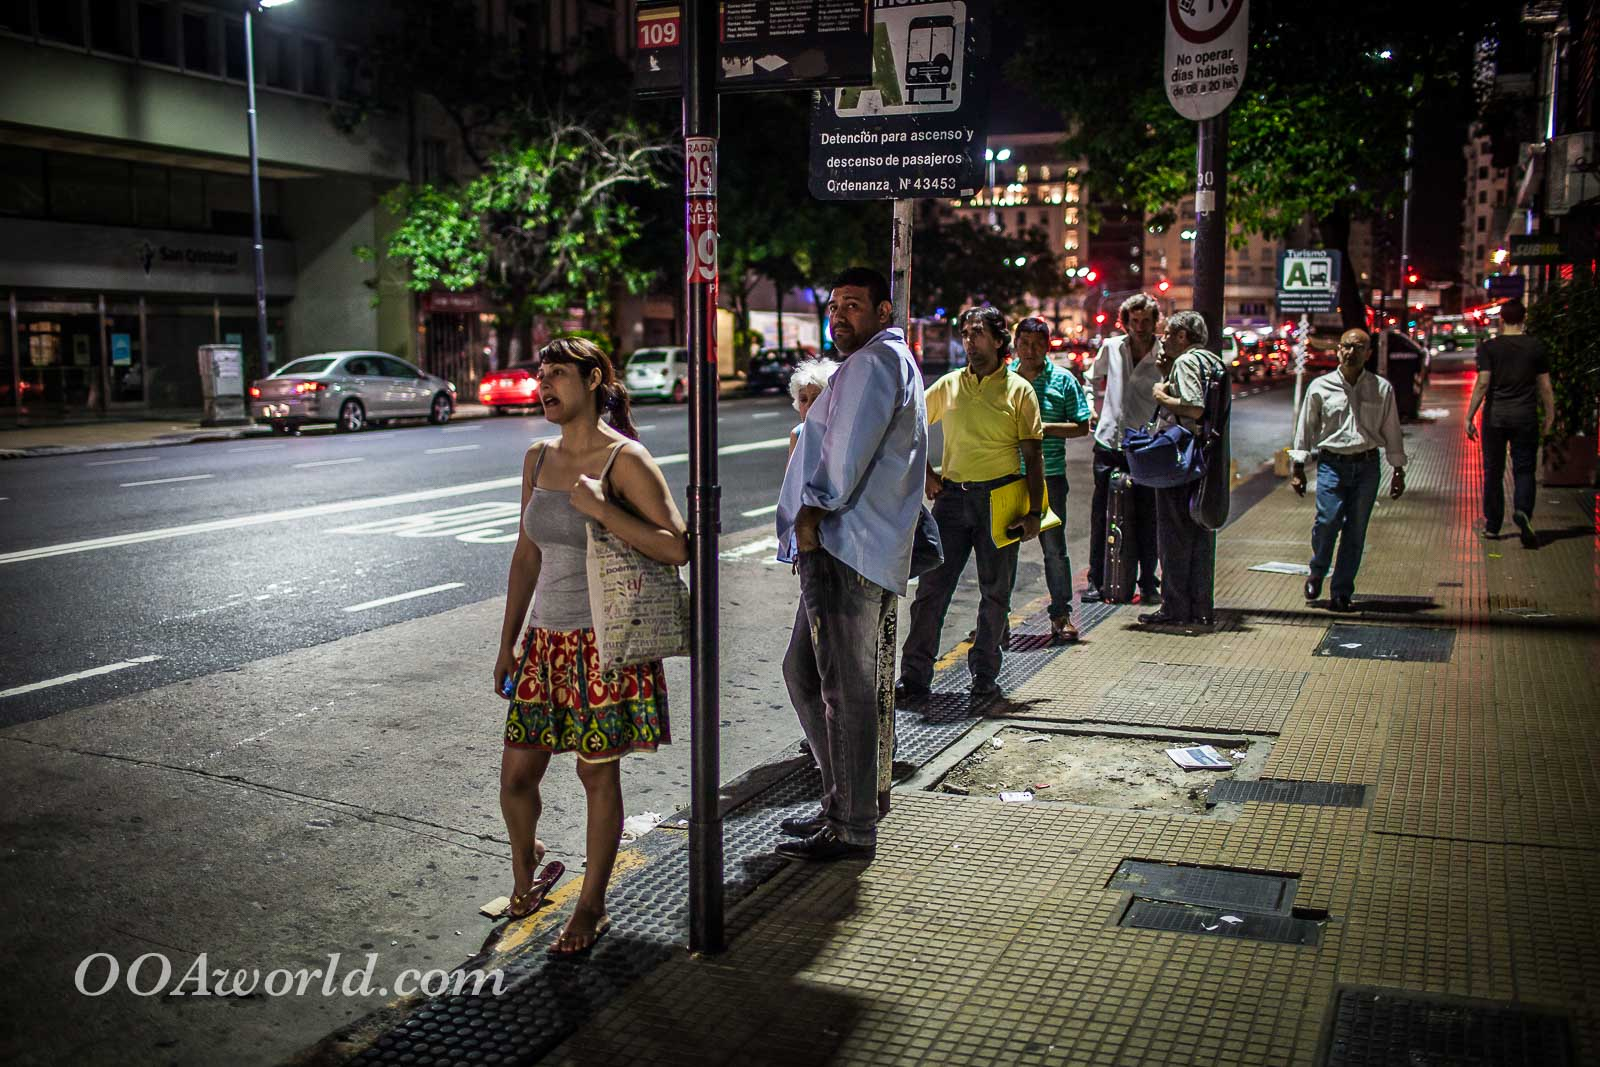 Buenos Aires Bus Line Photo Ooaworld